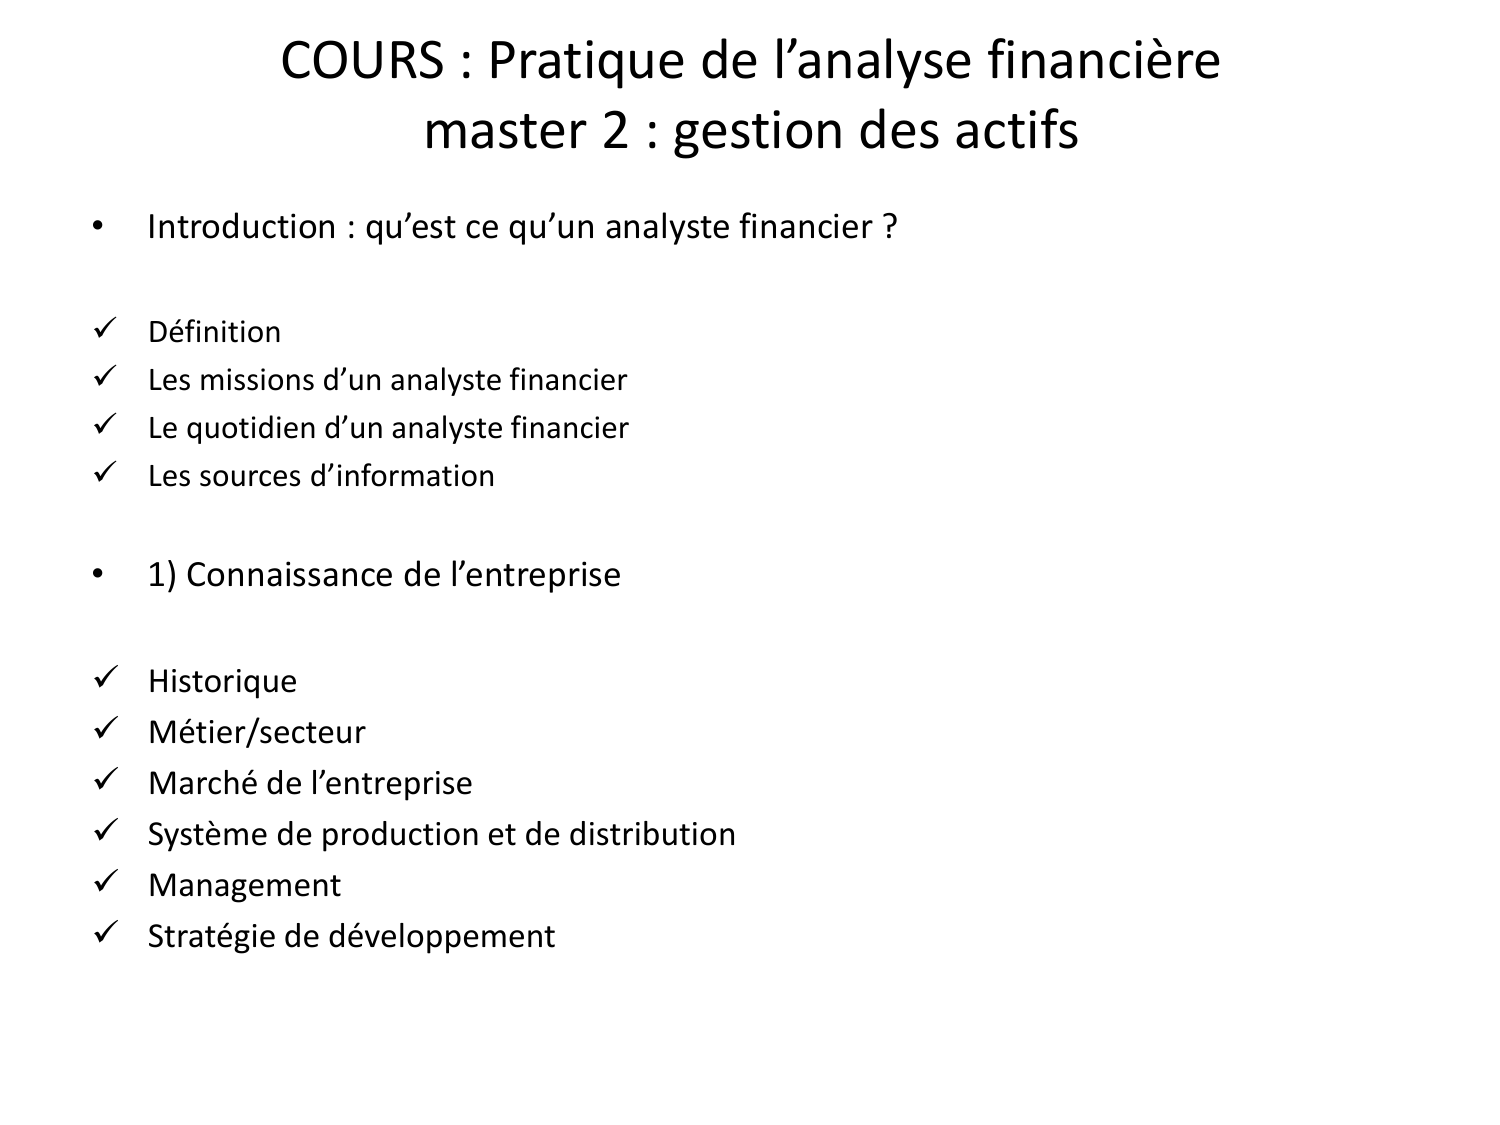 cours m2 gda 2015